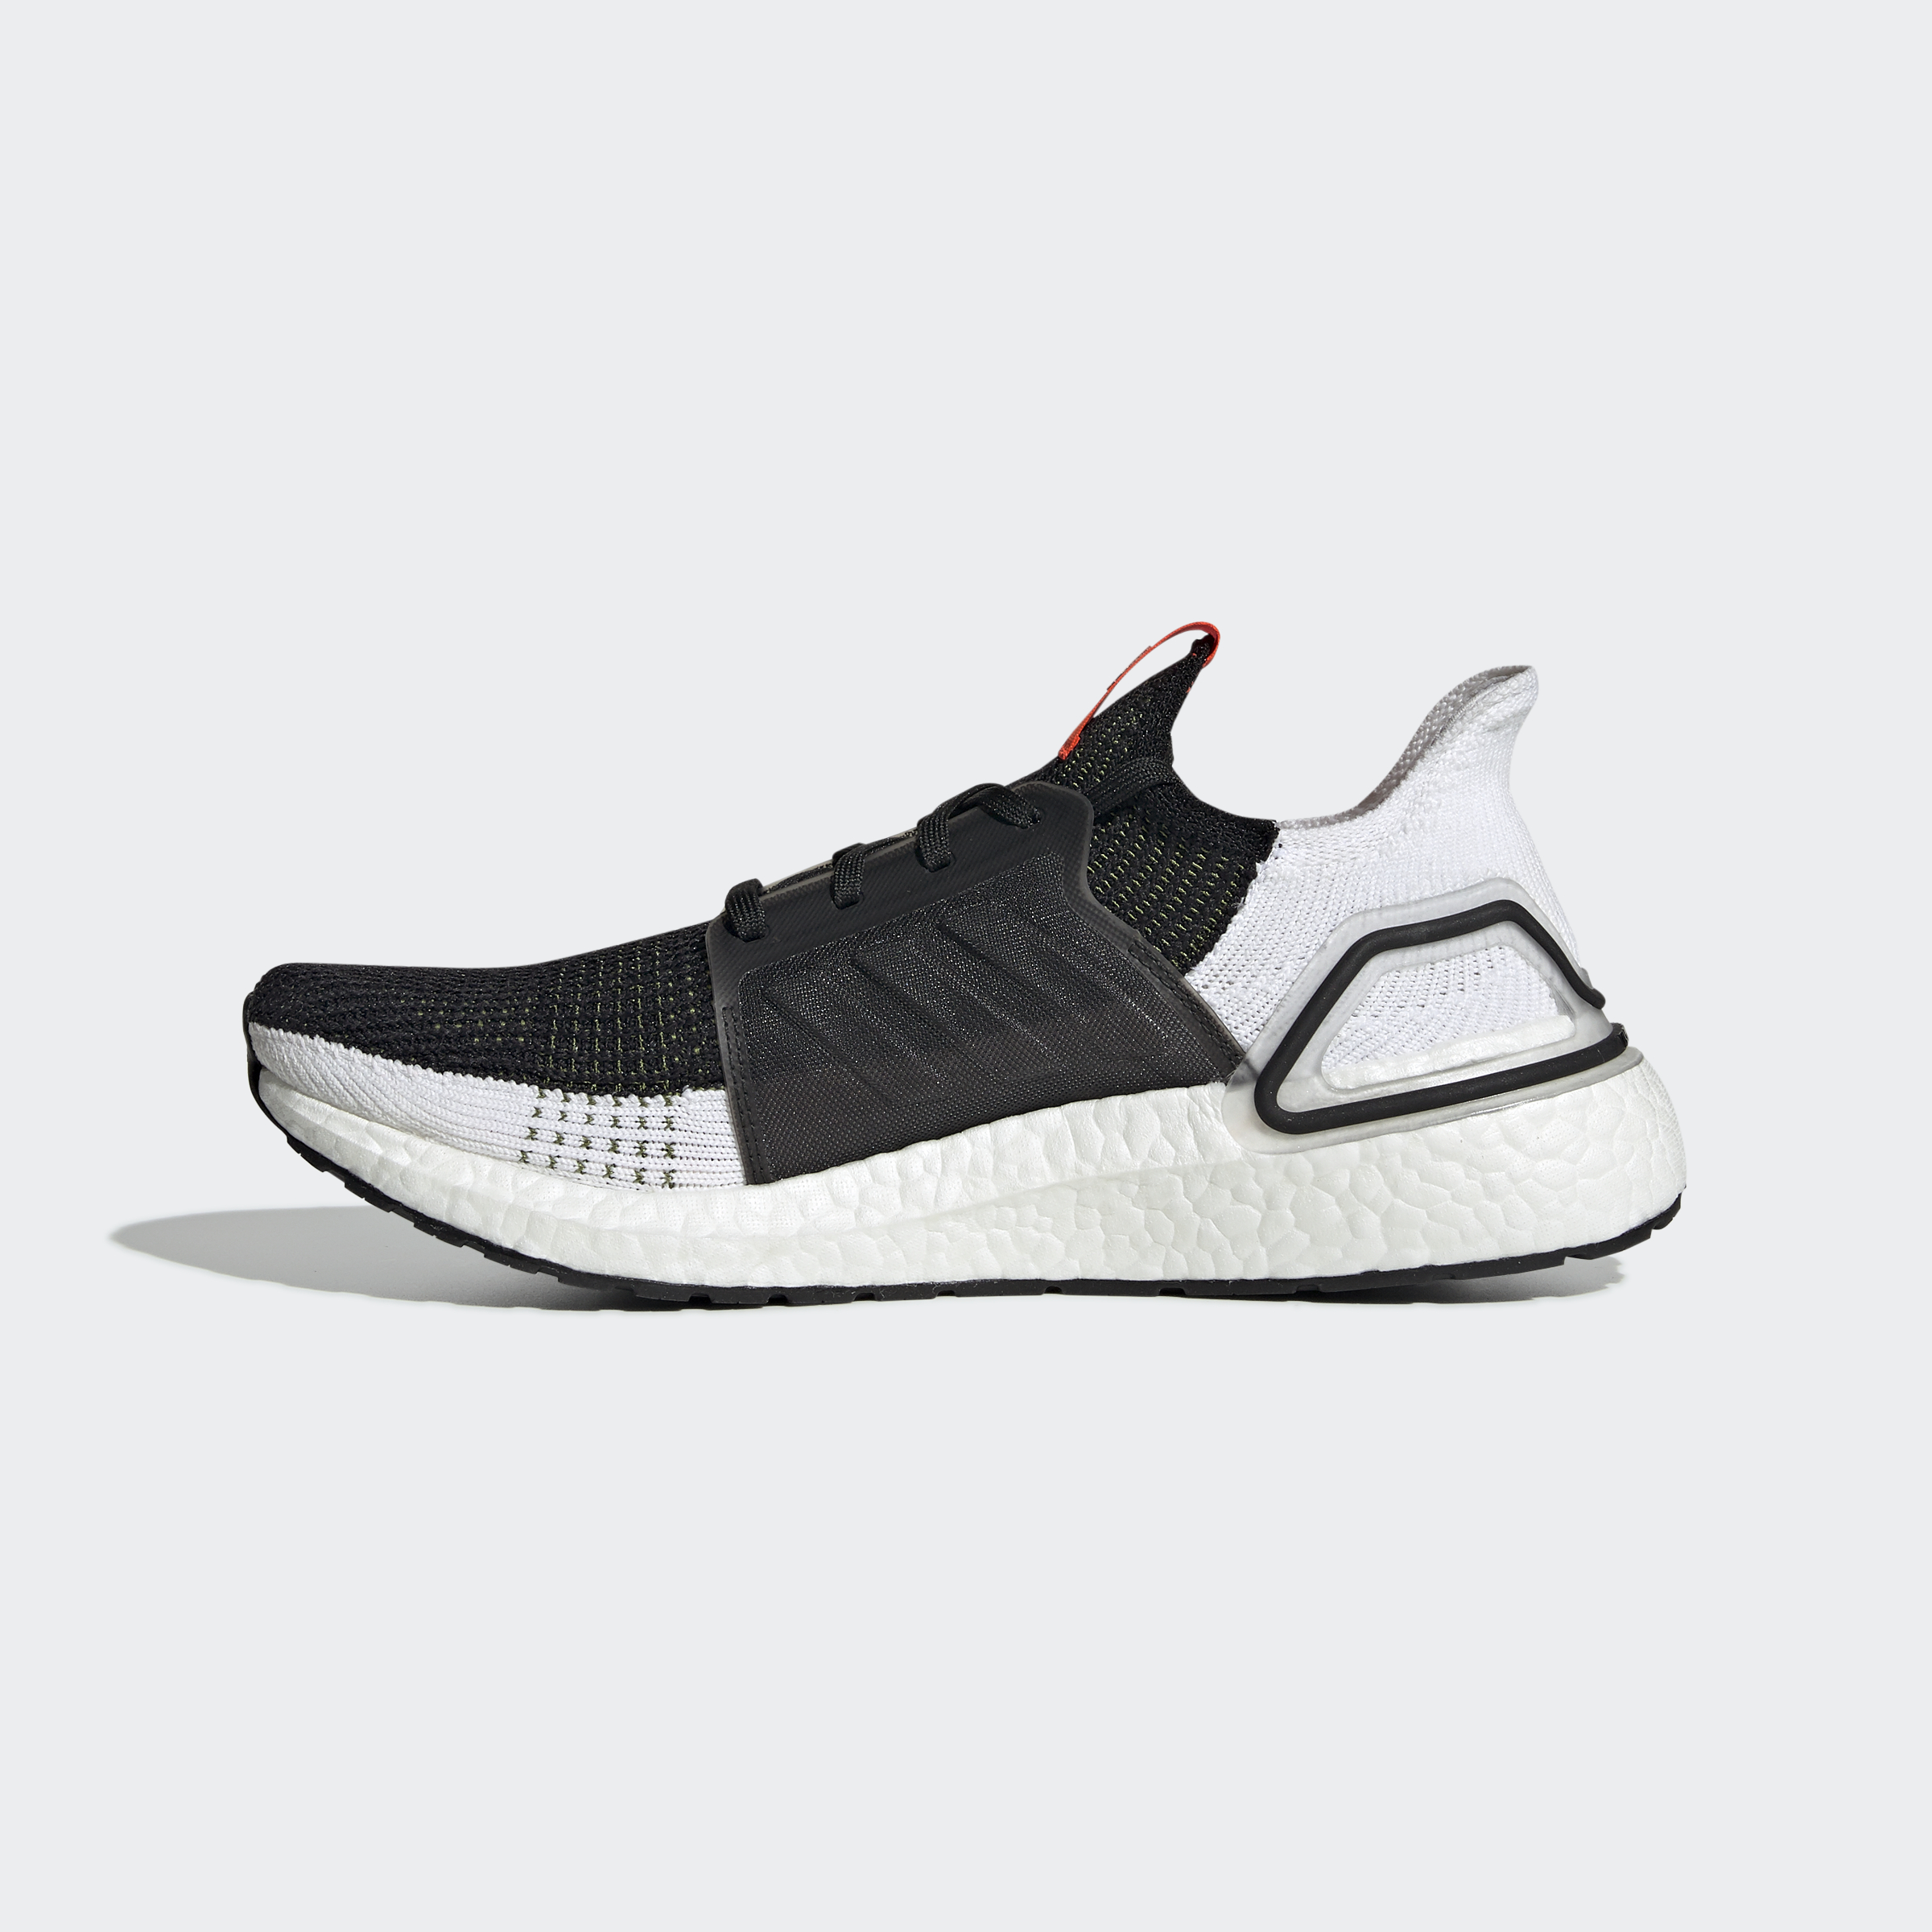 adidas-Ultraboost-19-Shoes-Athletic-amp-Sneakers thumbnail 56